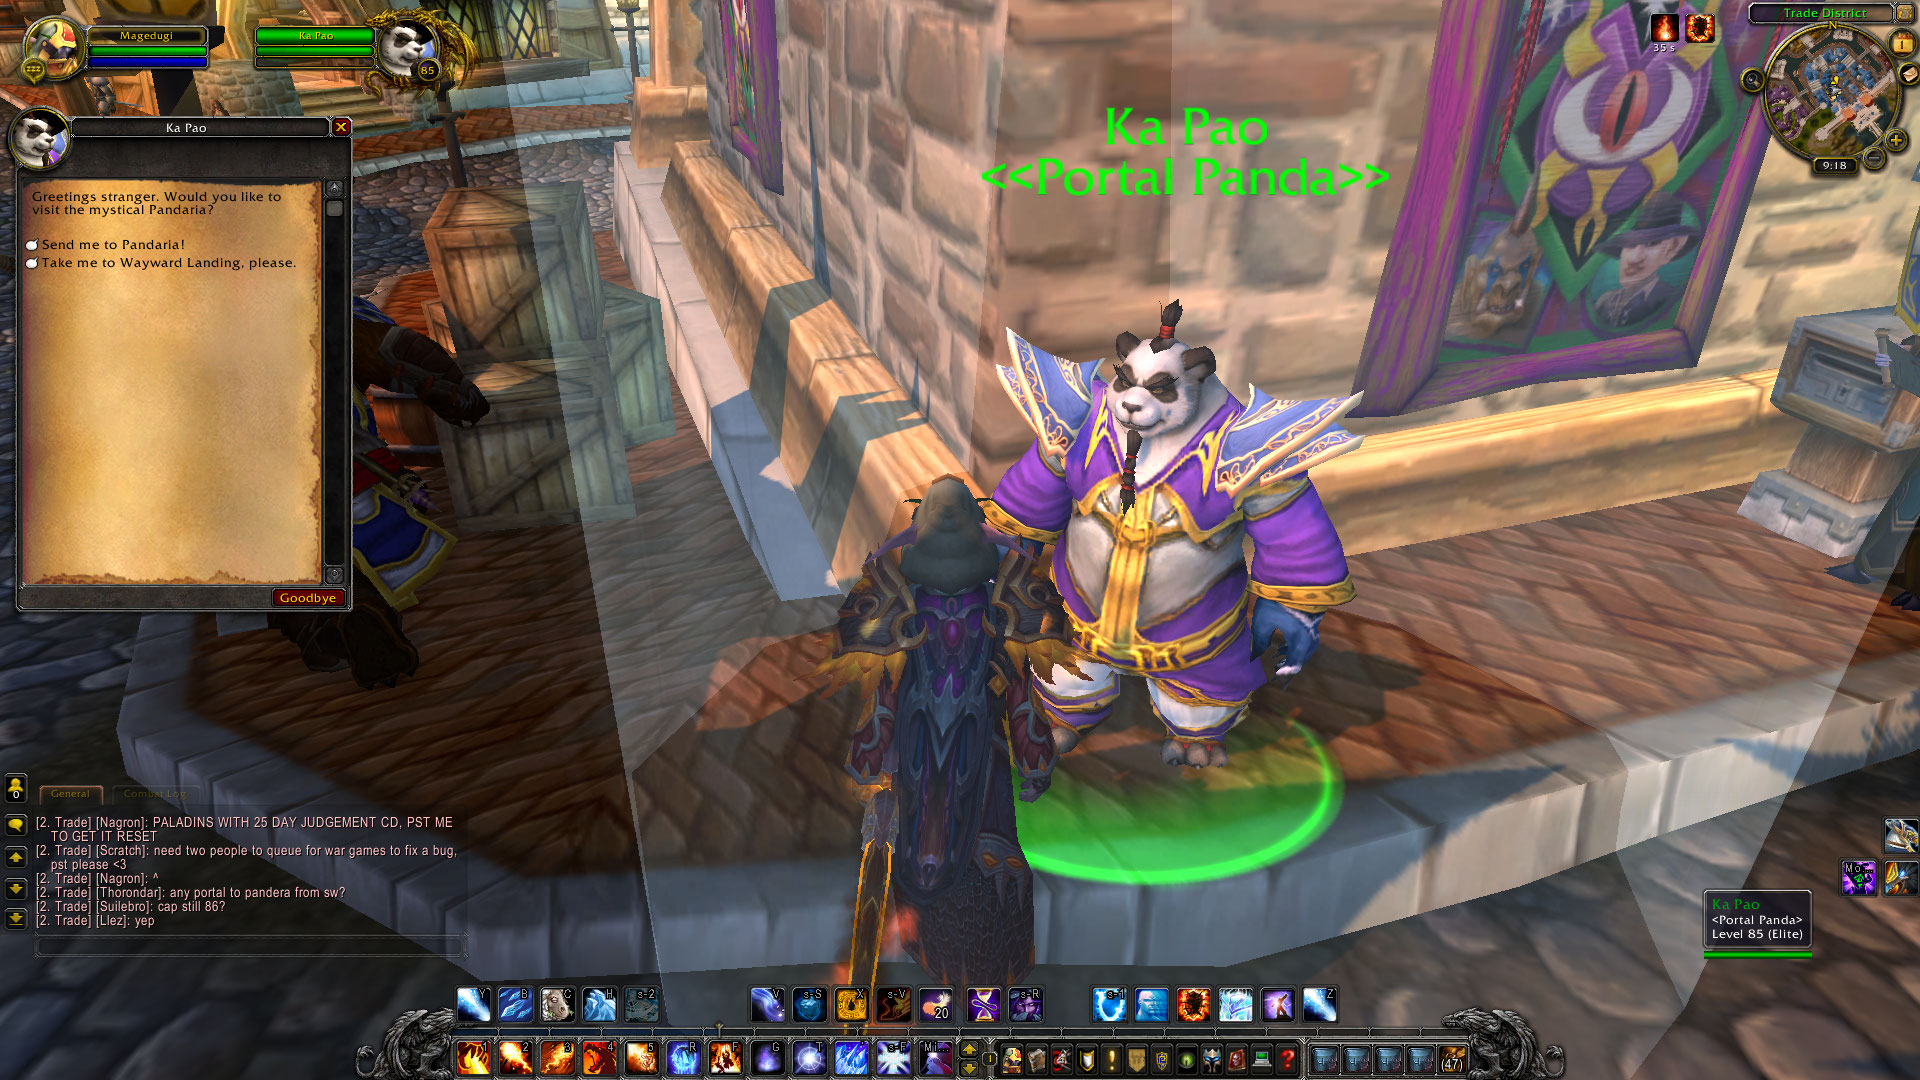 World of Warcraft: how to get to Pandaria Alliance and Horde players